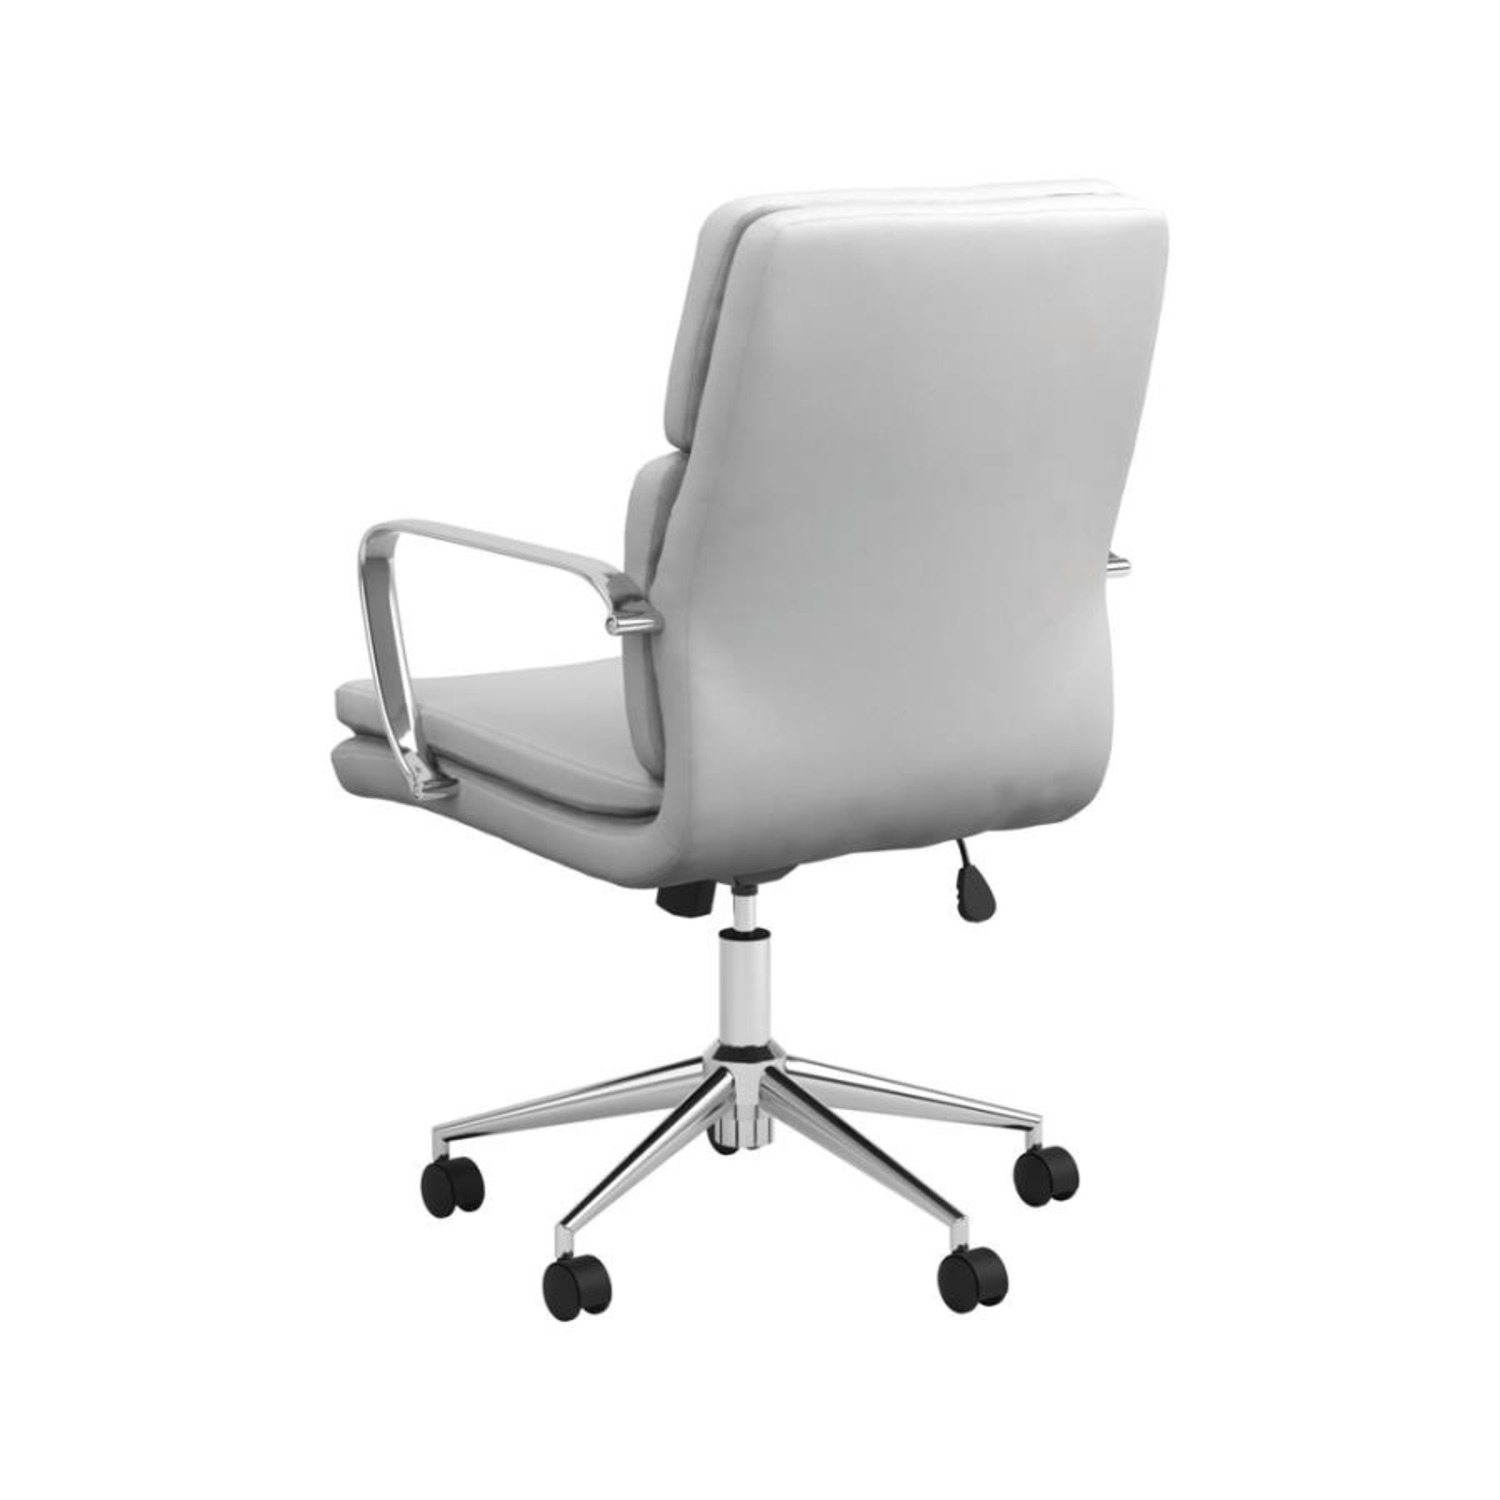 Office Chair In White Leatherette & Chrome Finish - image-3